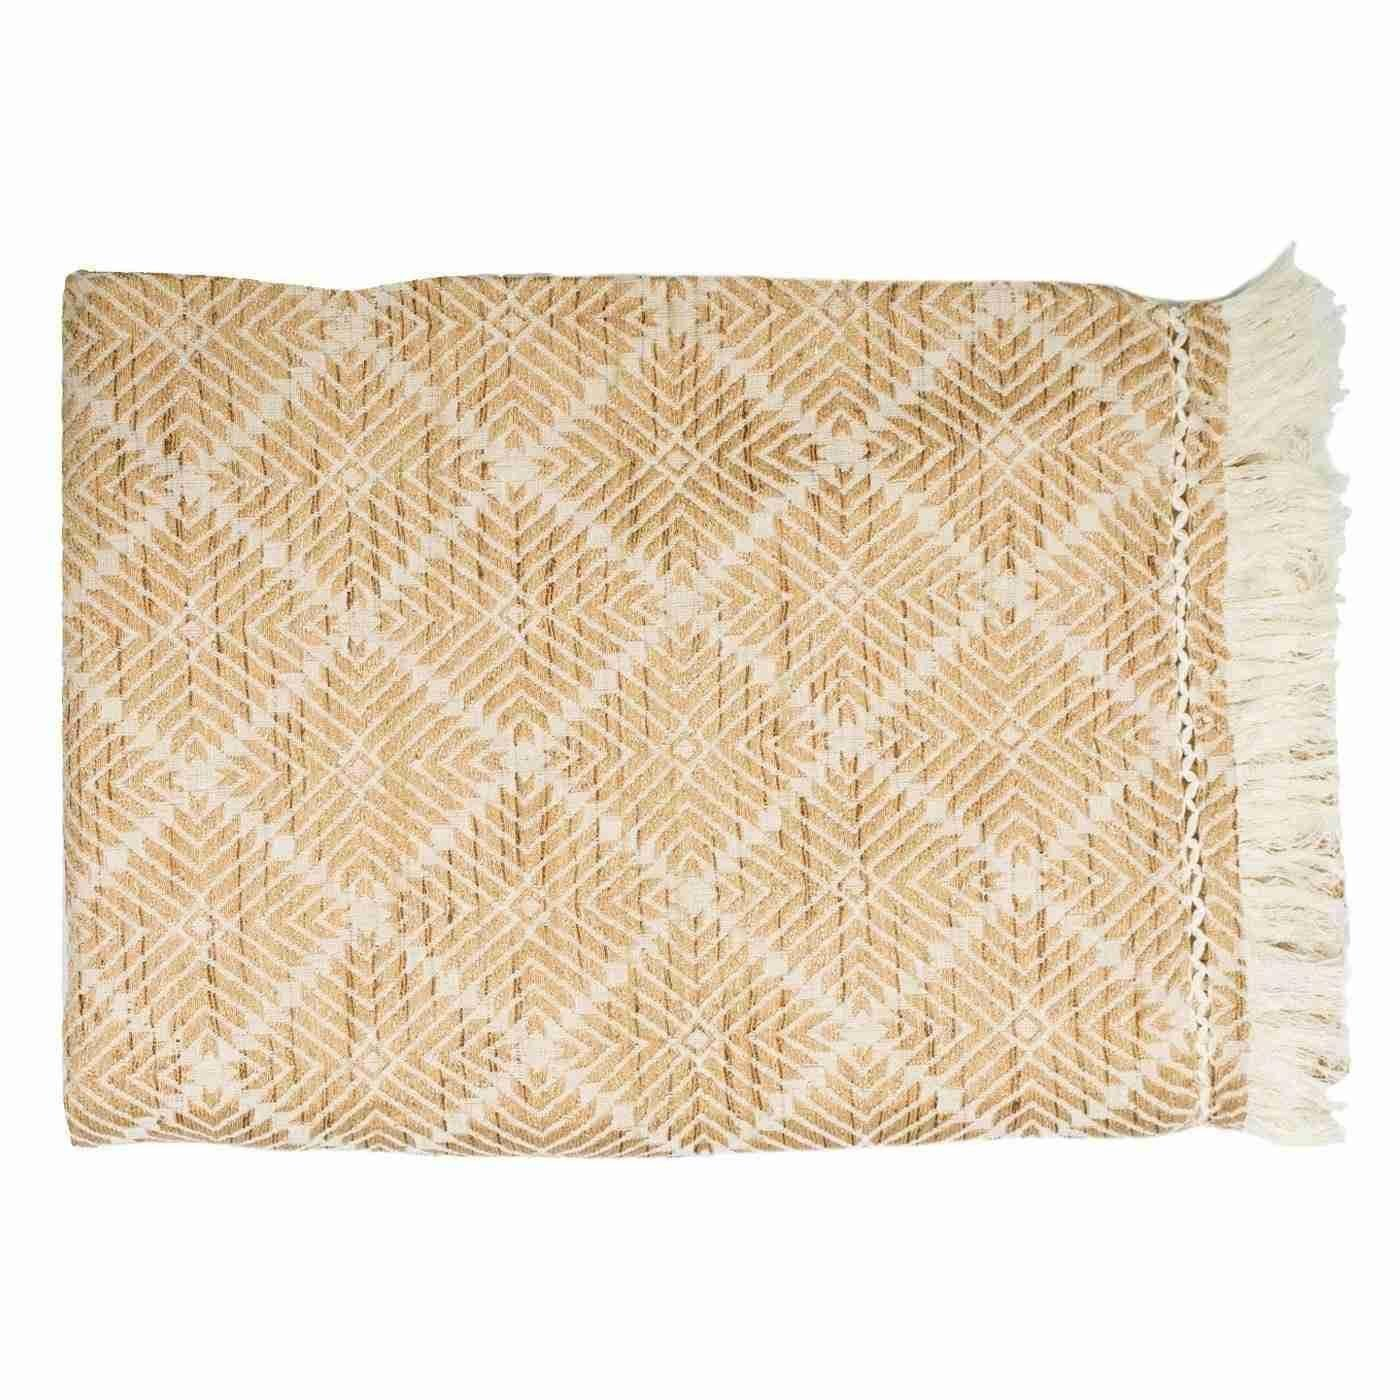 Bandhini Homewear Design Throw Earth Beige / Vintage Tribe / 46 x 72 Weave Phulkari Natural Throw 117 x 183 cm